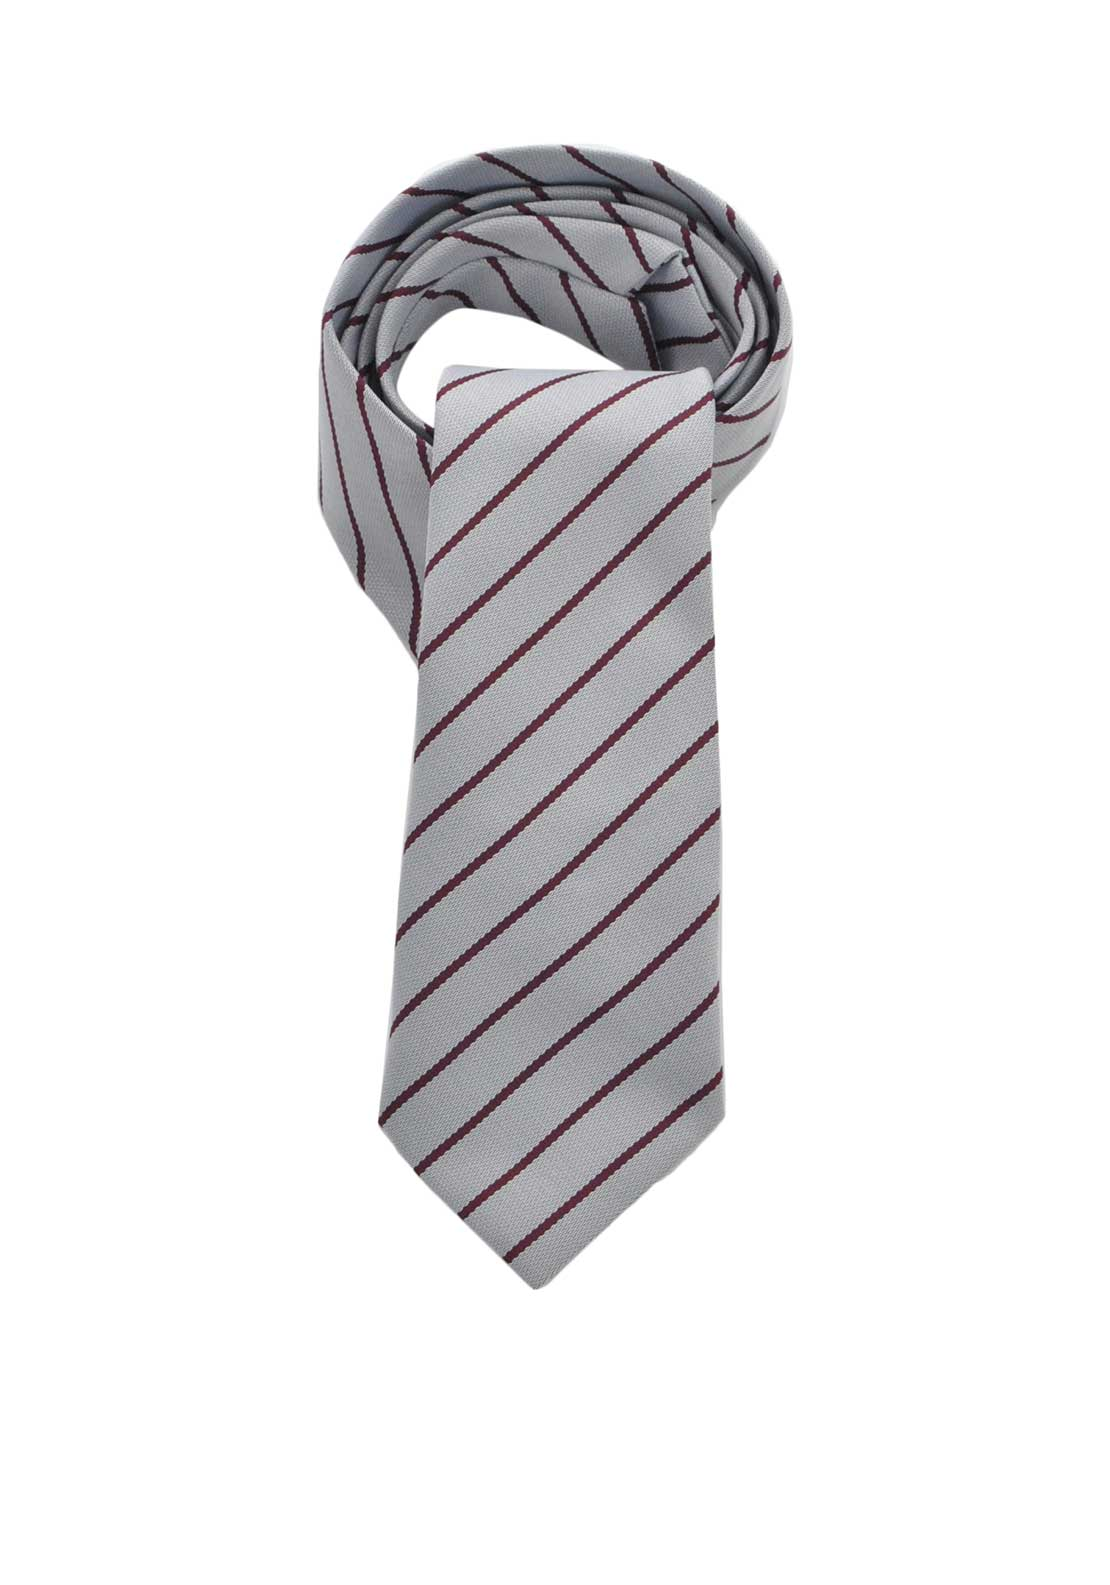 Hunter St. Columbas Striped School Tie, Grey and Wine